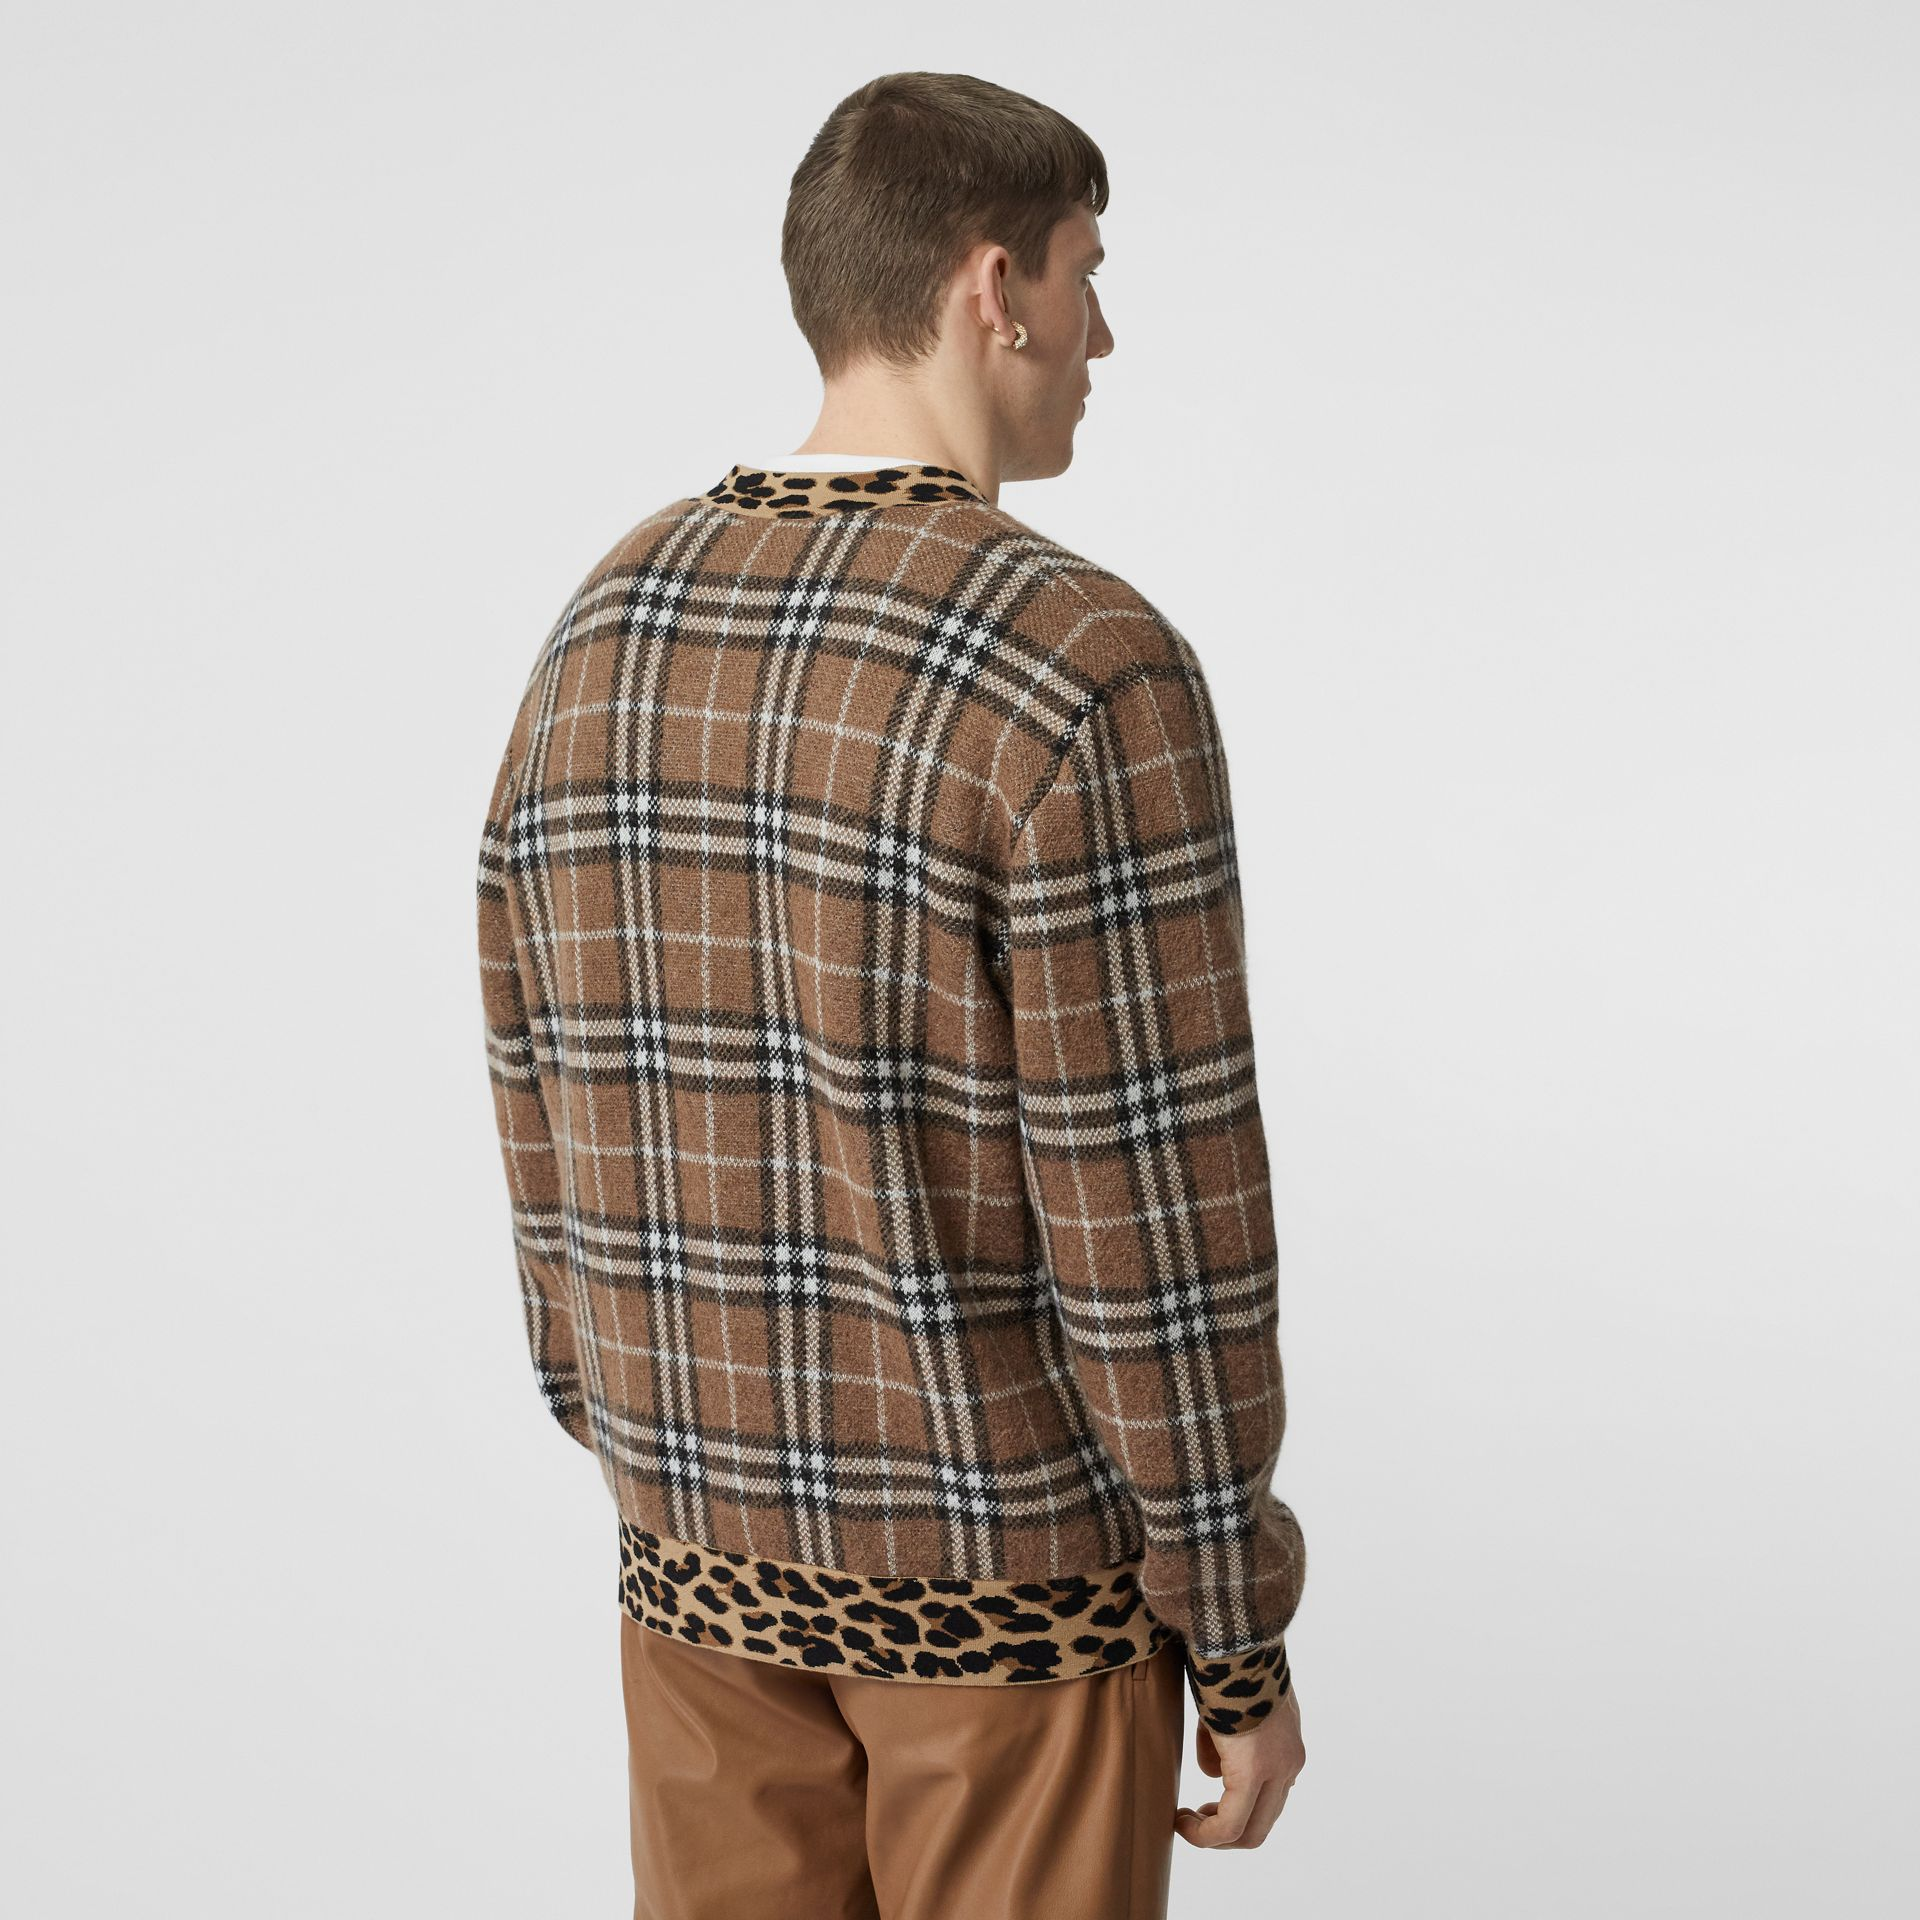 Leopard Detail Vintage Check Cashmere Blend Sweater in Warm Walnut - Men | Burberry - gallery image 1